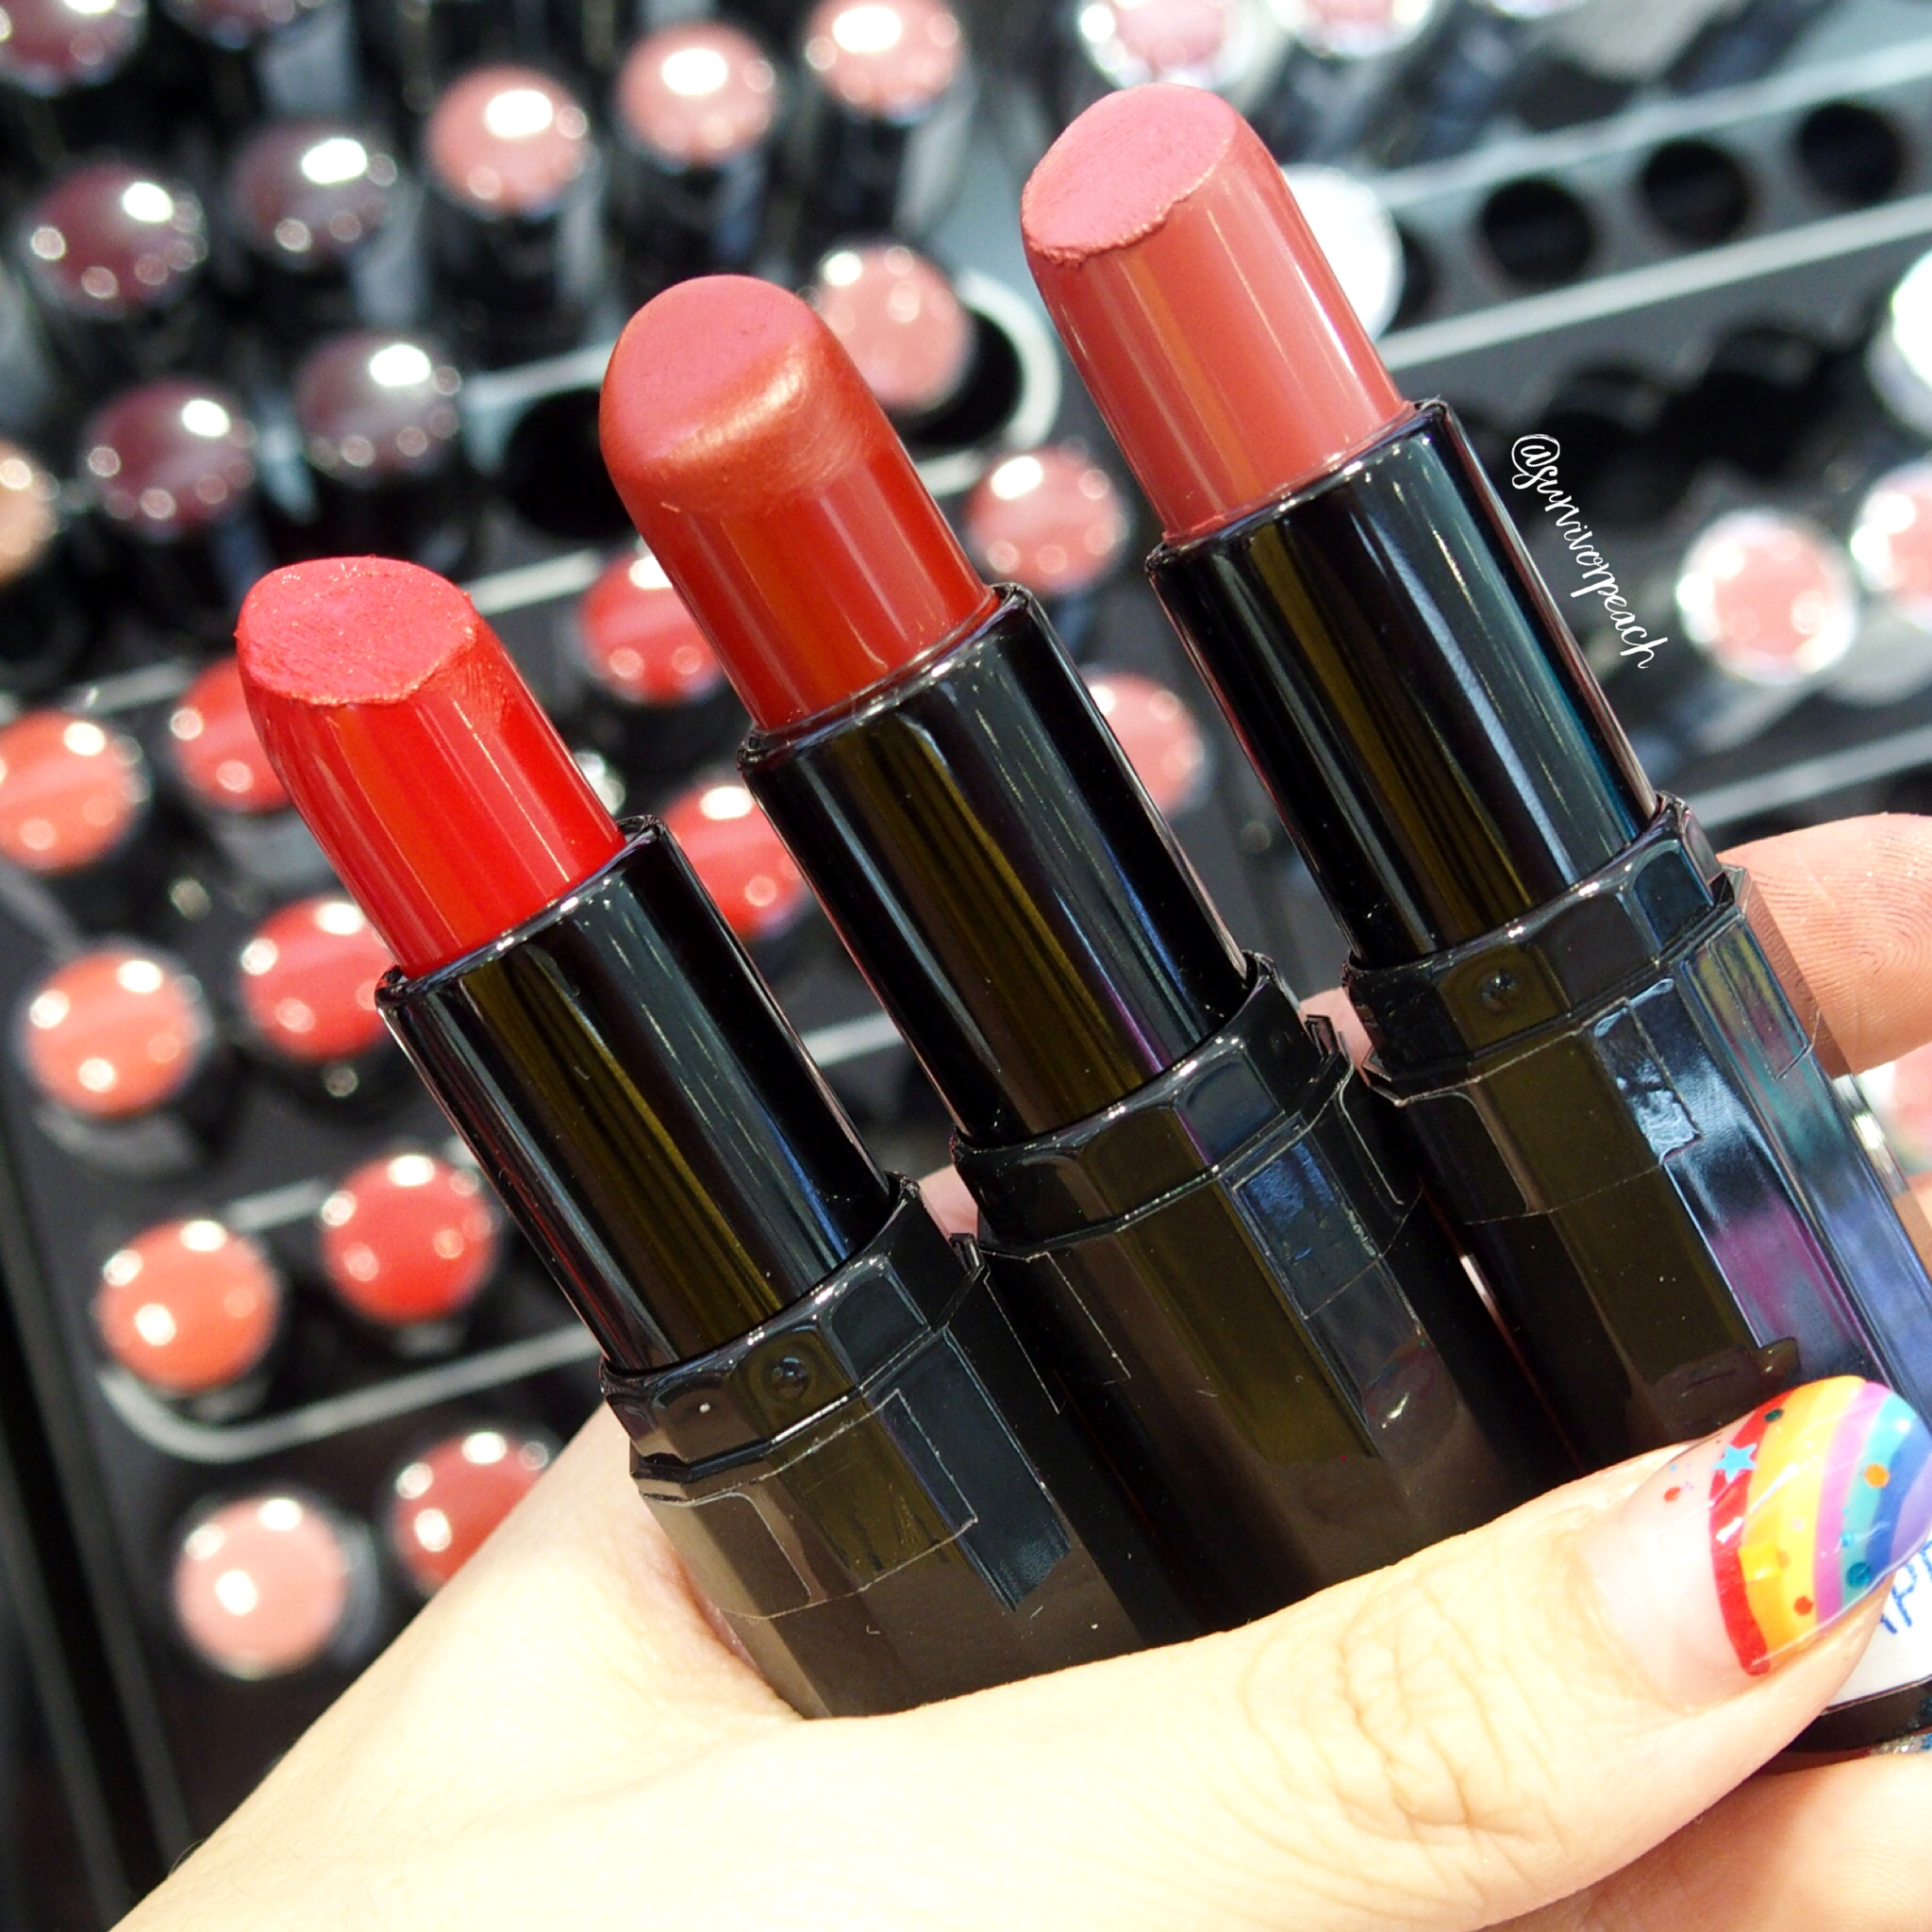 Sephora Collection Rouge Satin Lipstick - S12 On My Way, S13 Feeling Free, S18 Oh Oh!